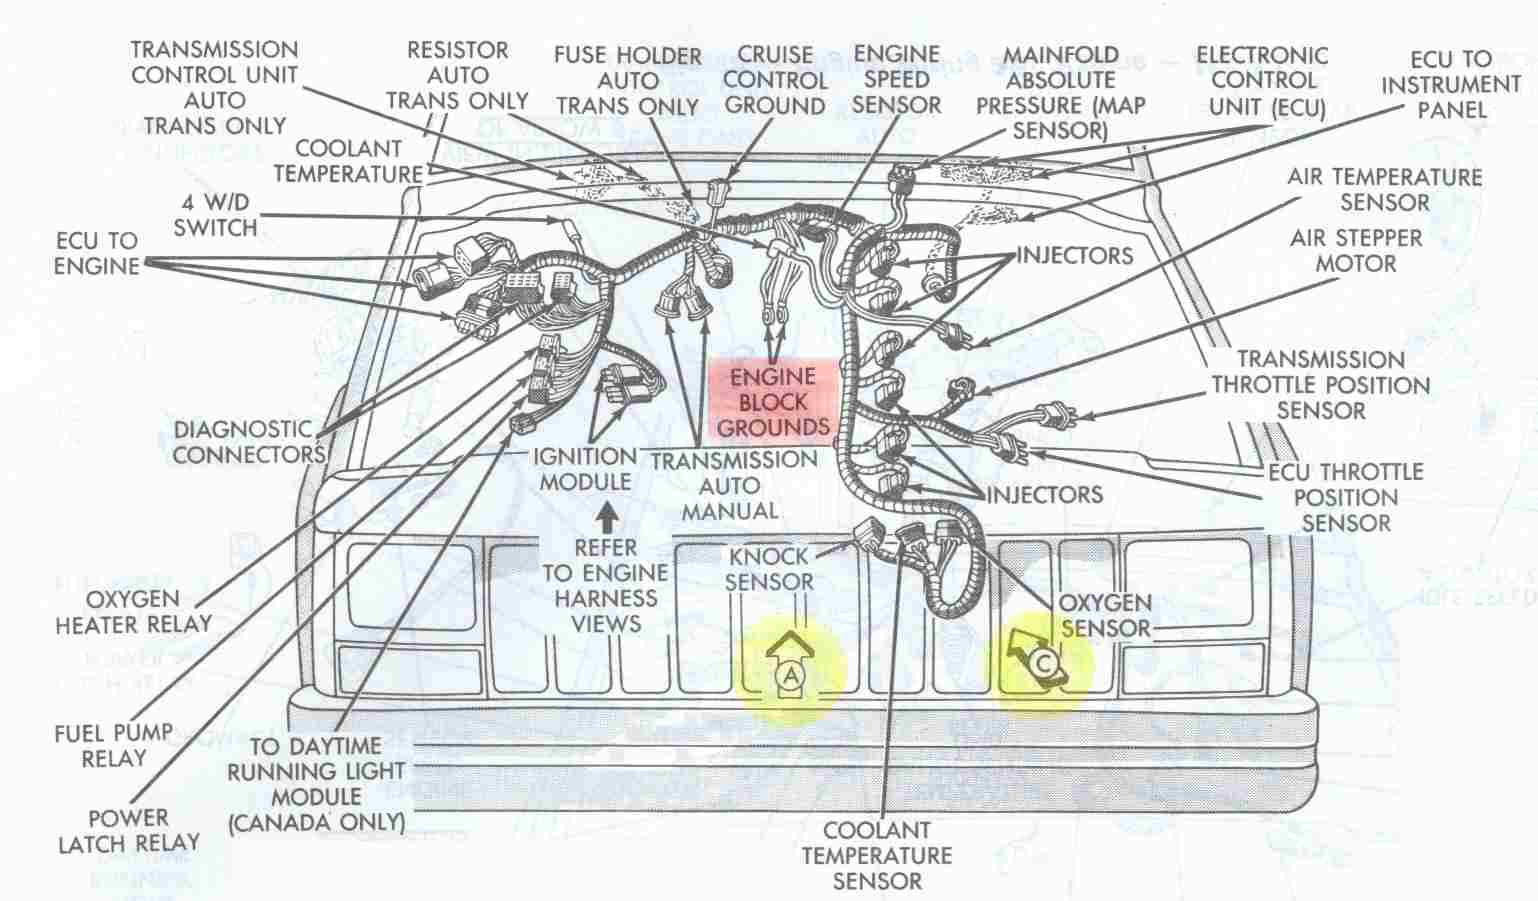 hight resolution of 2001 jeep xj wiring harness diagram data schema 2001 jeep cherokee sport engine diagram wiring diagram